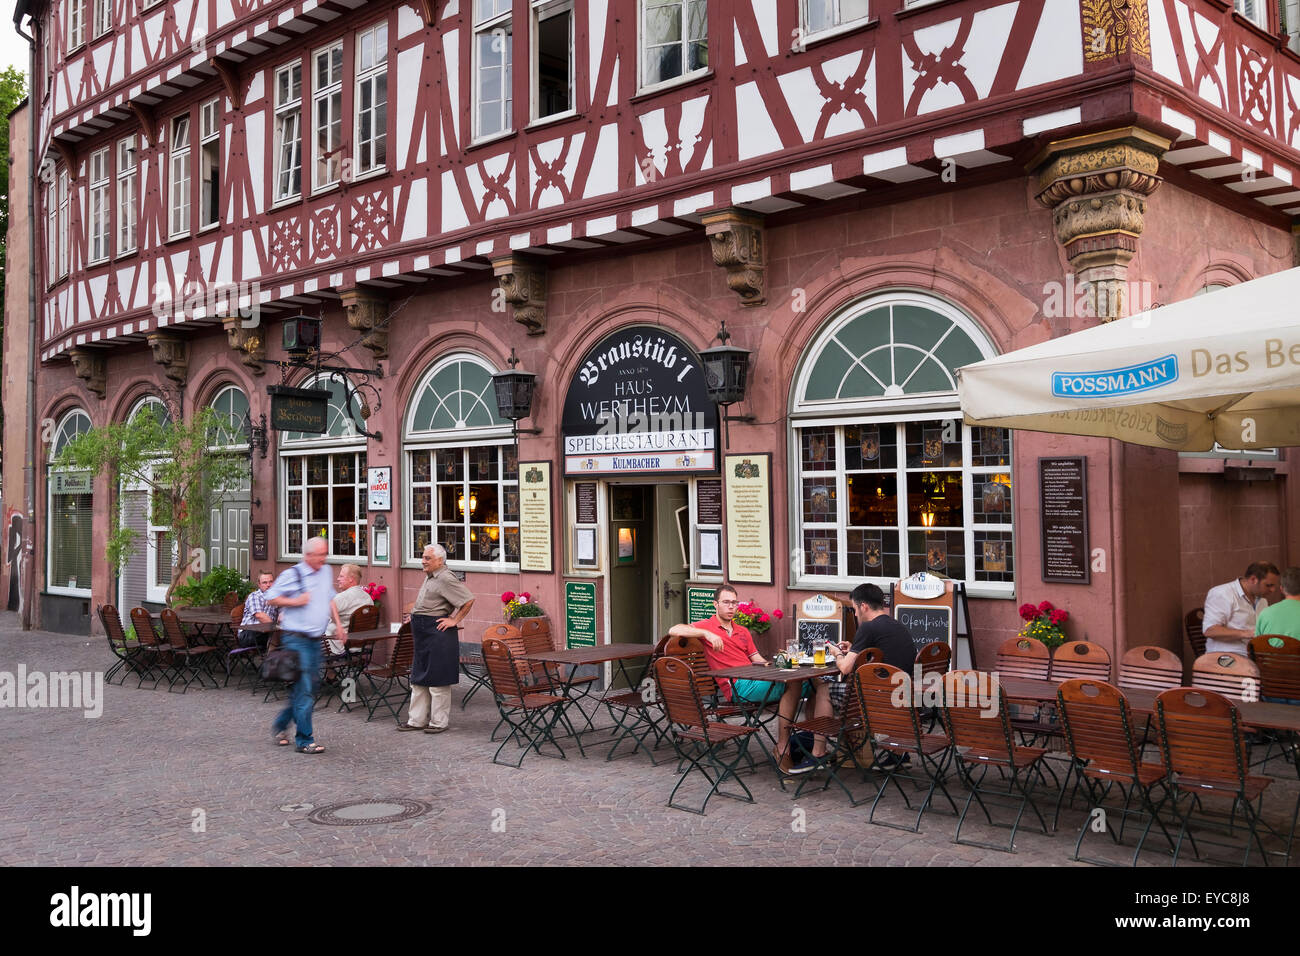 Haus Wertheym Oldest Restaurant In Frankfurt Historic Centre Stock